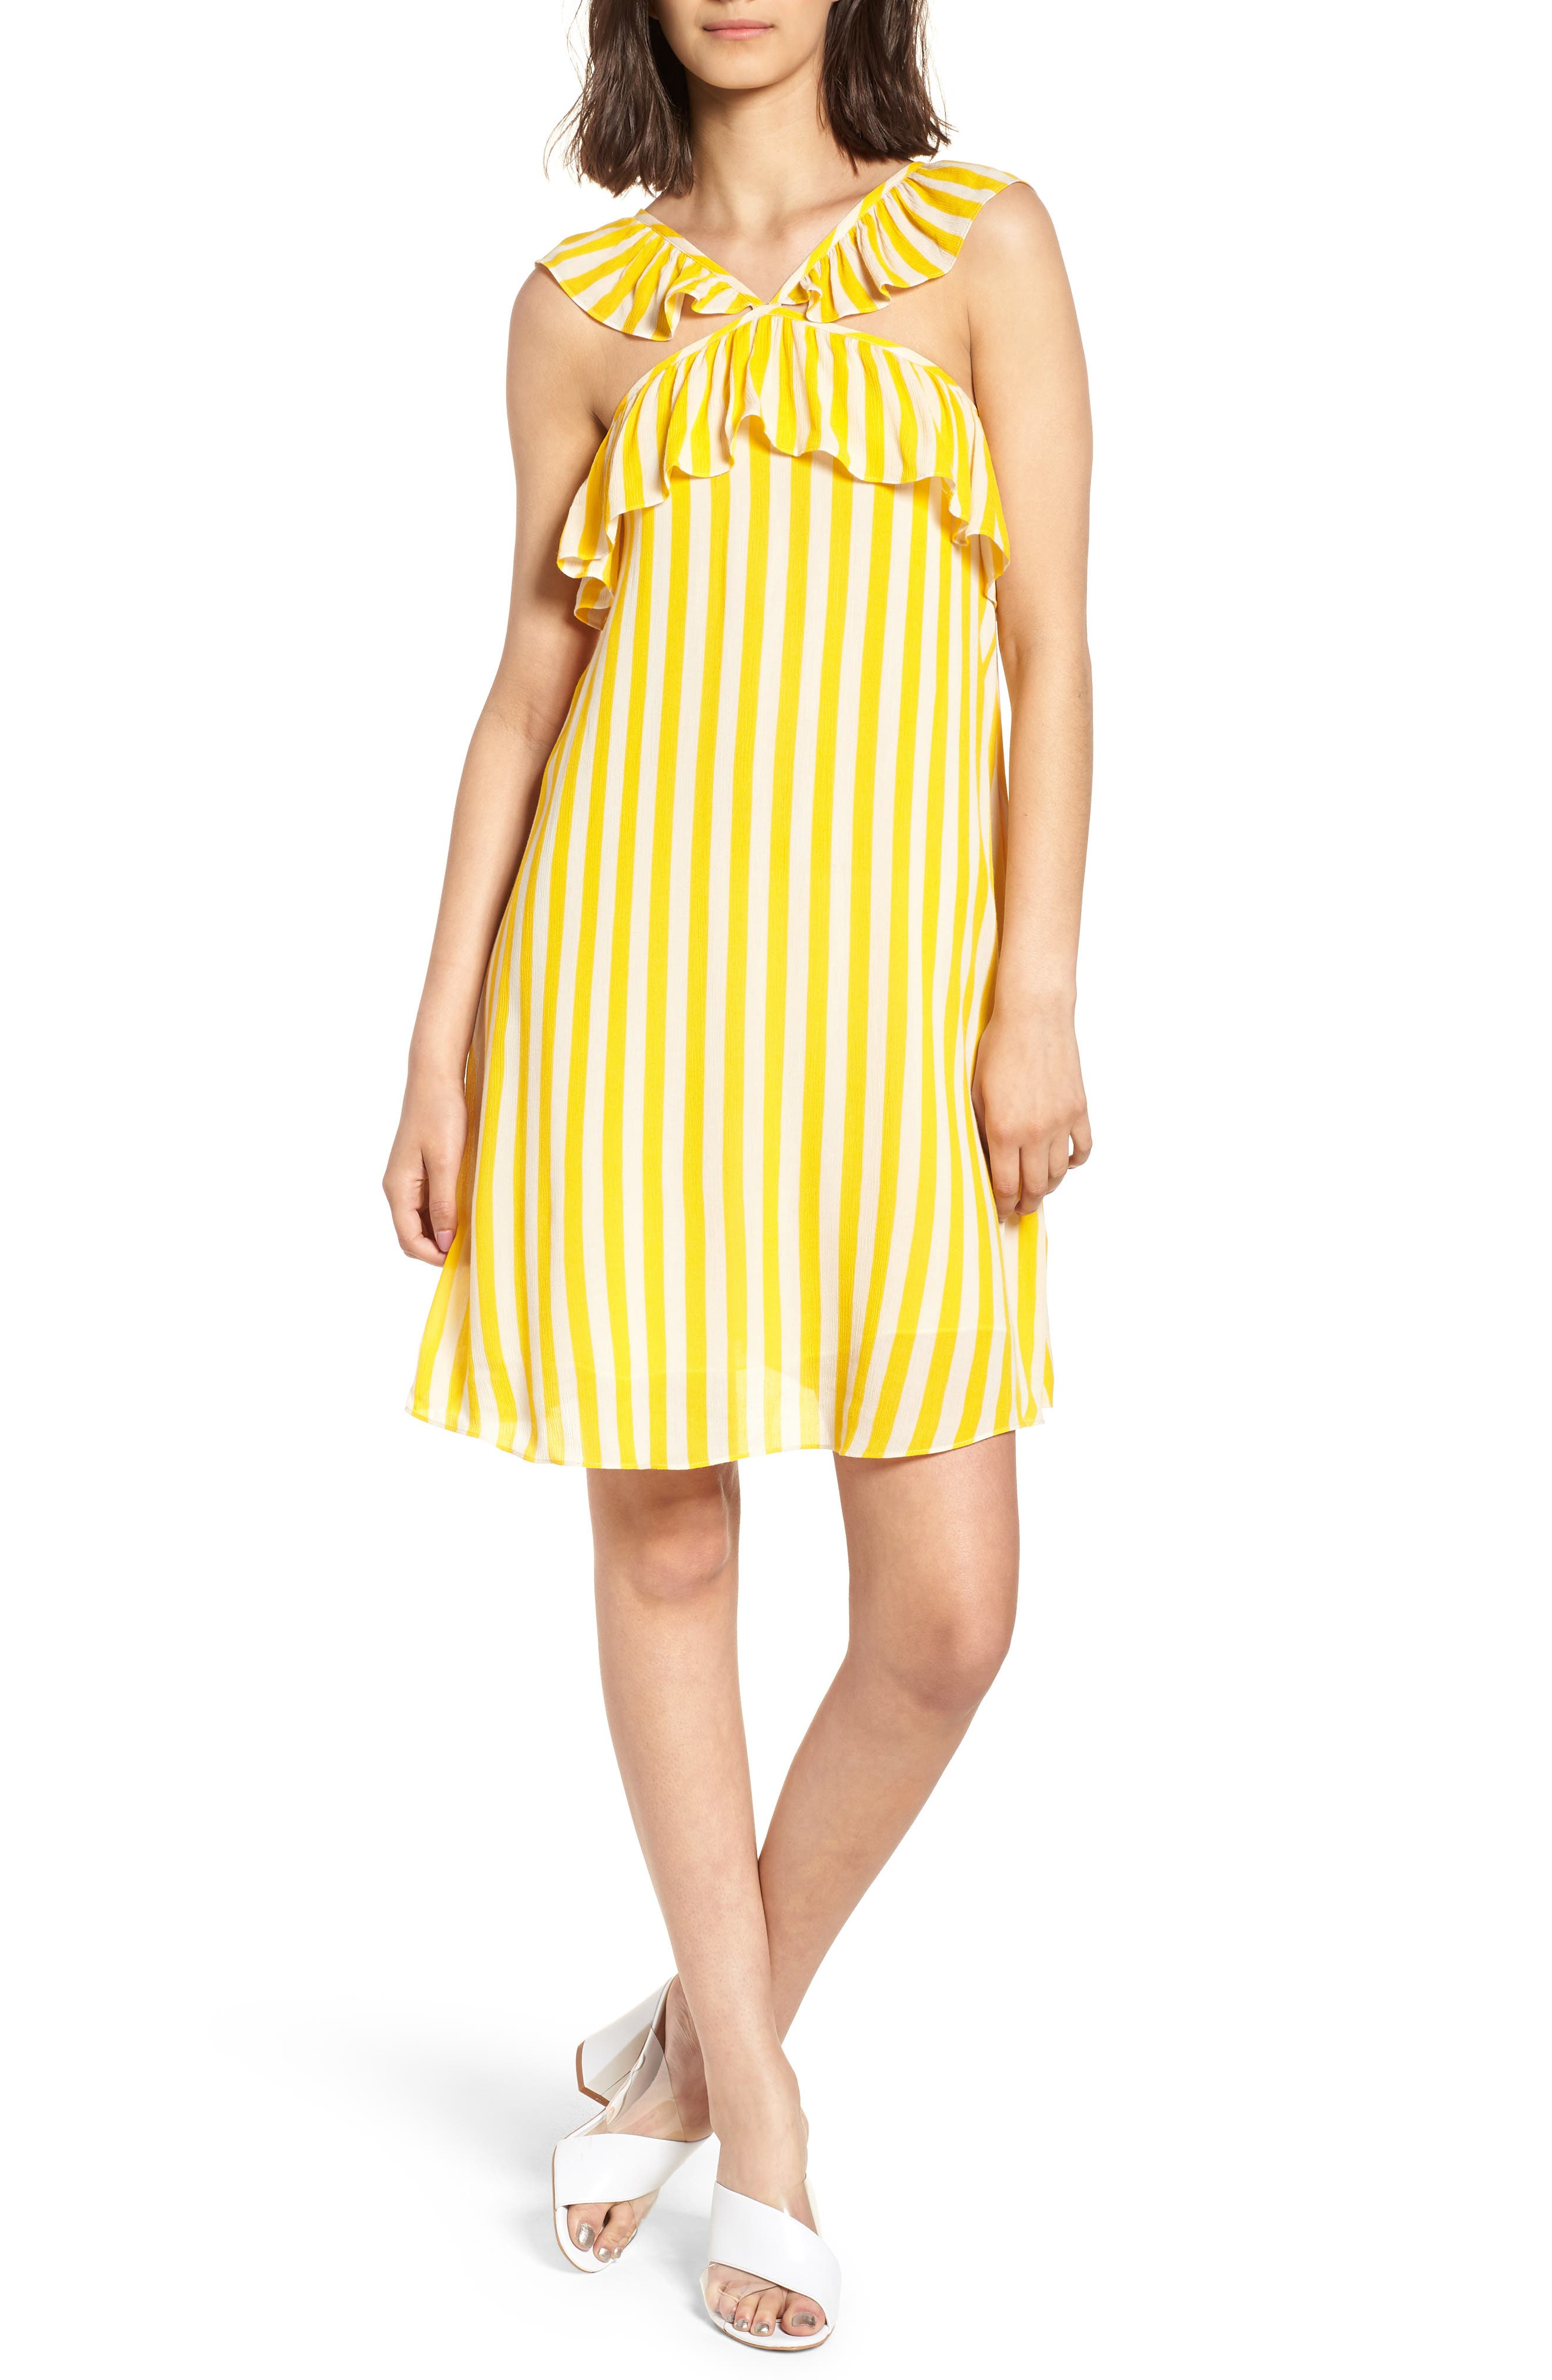 Tinsley Halter Dress,                         Main,                         color, YELLOW STRIPE